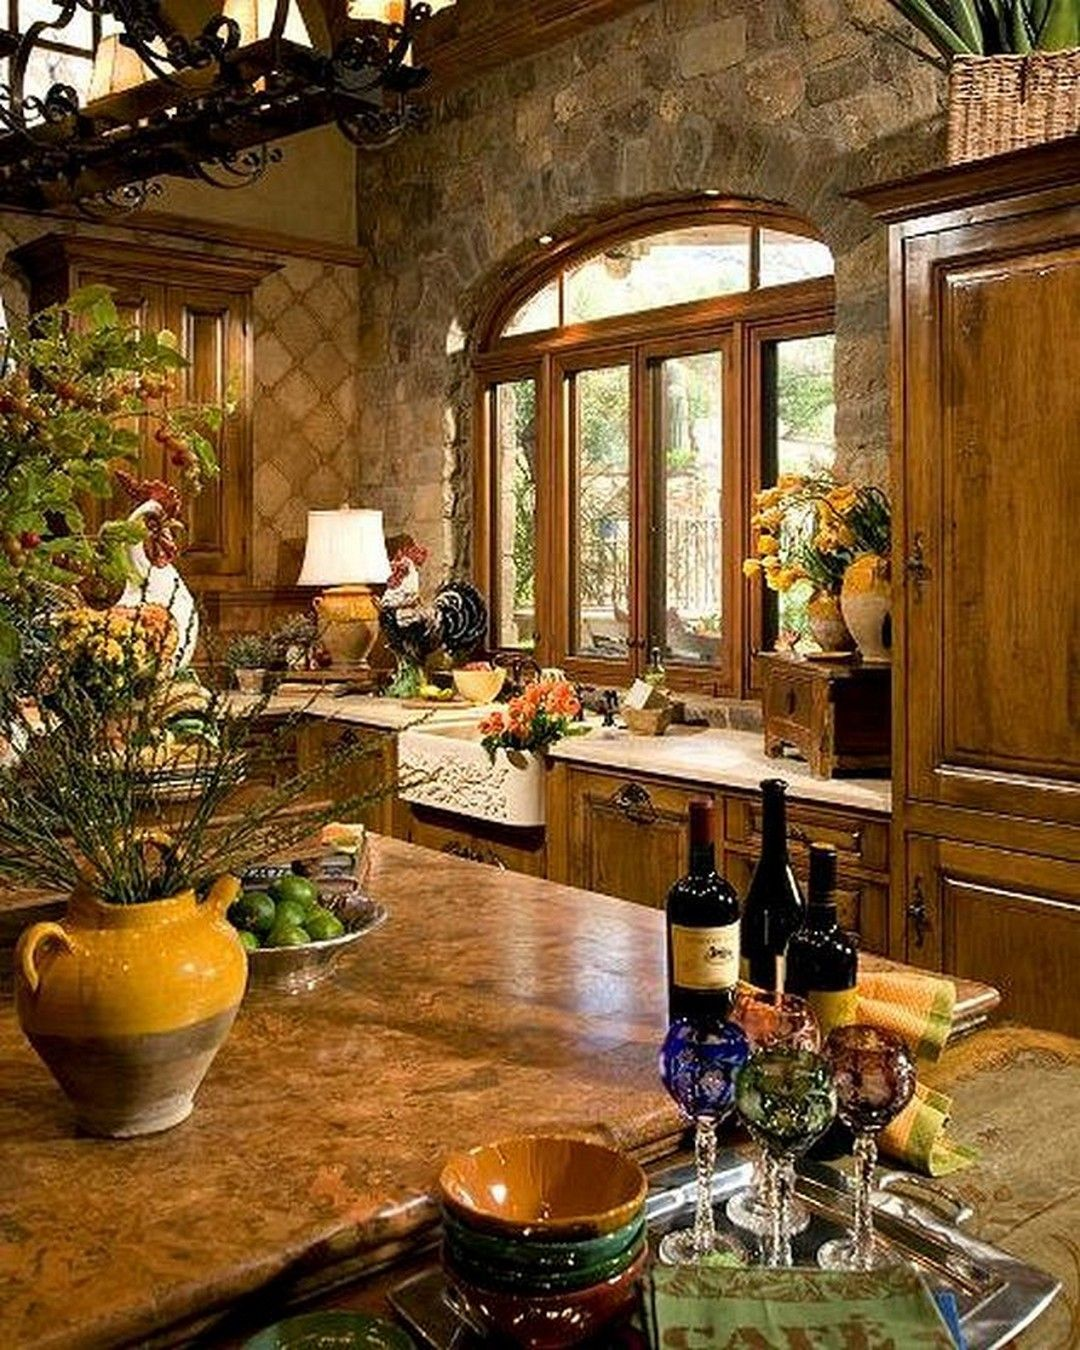 38 Beautiful Rustic Italian Home Style Inspirations Possibledecor